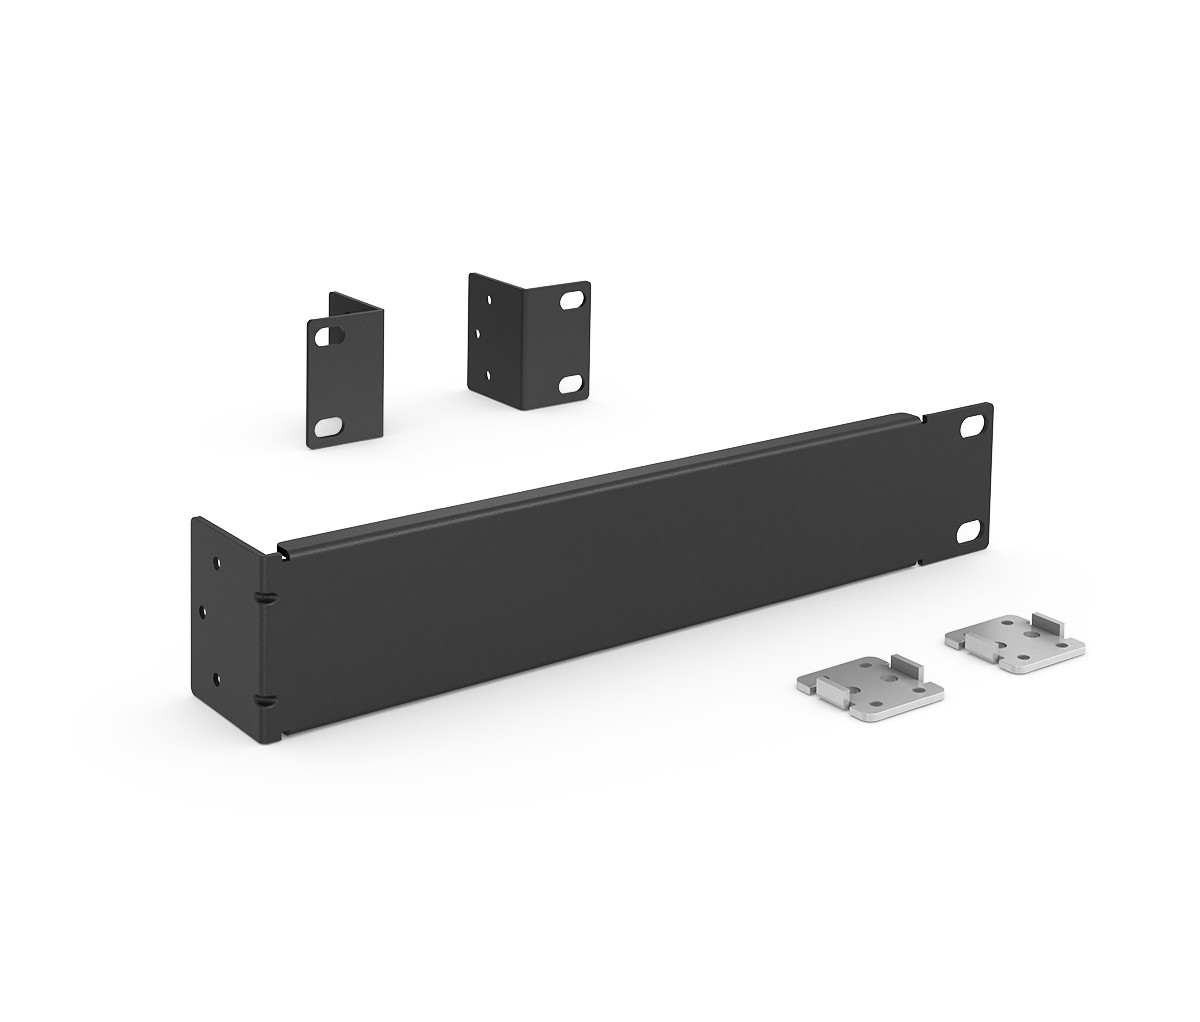 FreeSpace Rack Mount Kit